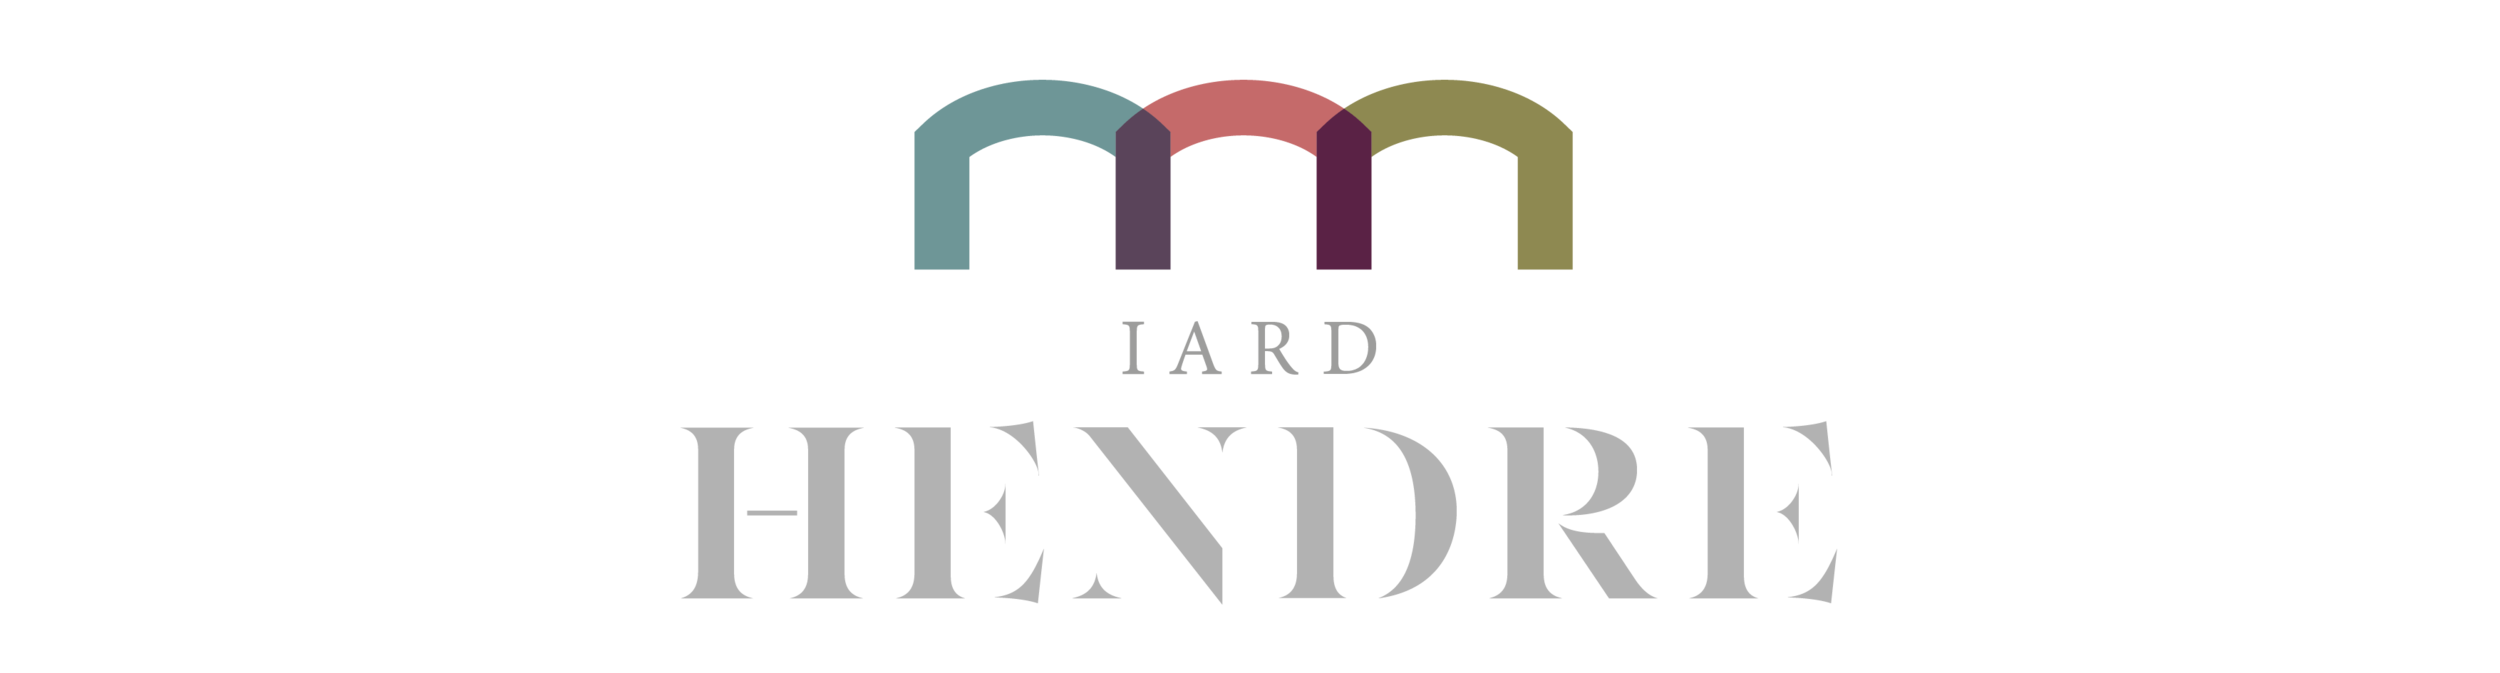 iard hendre.png